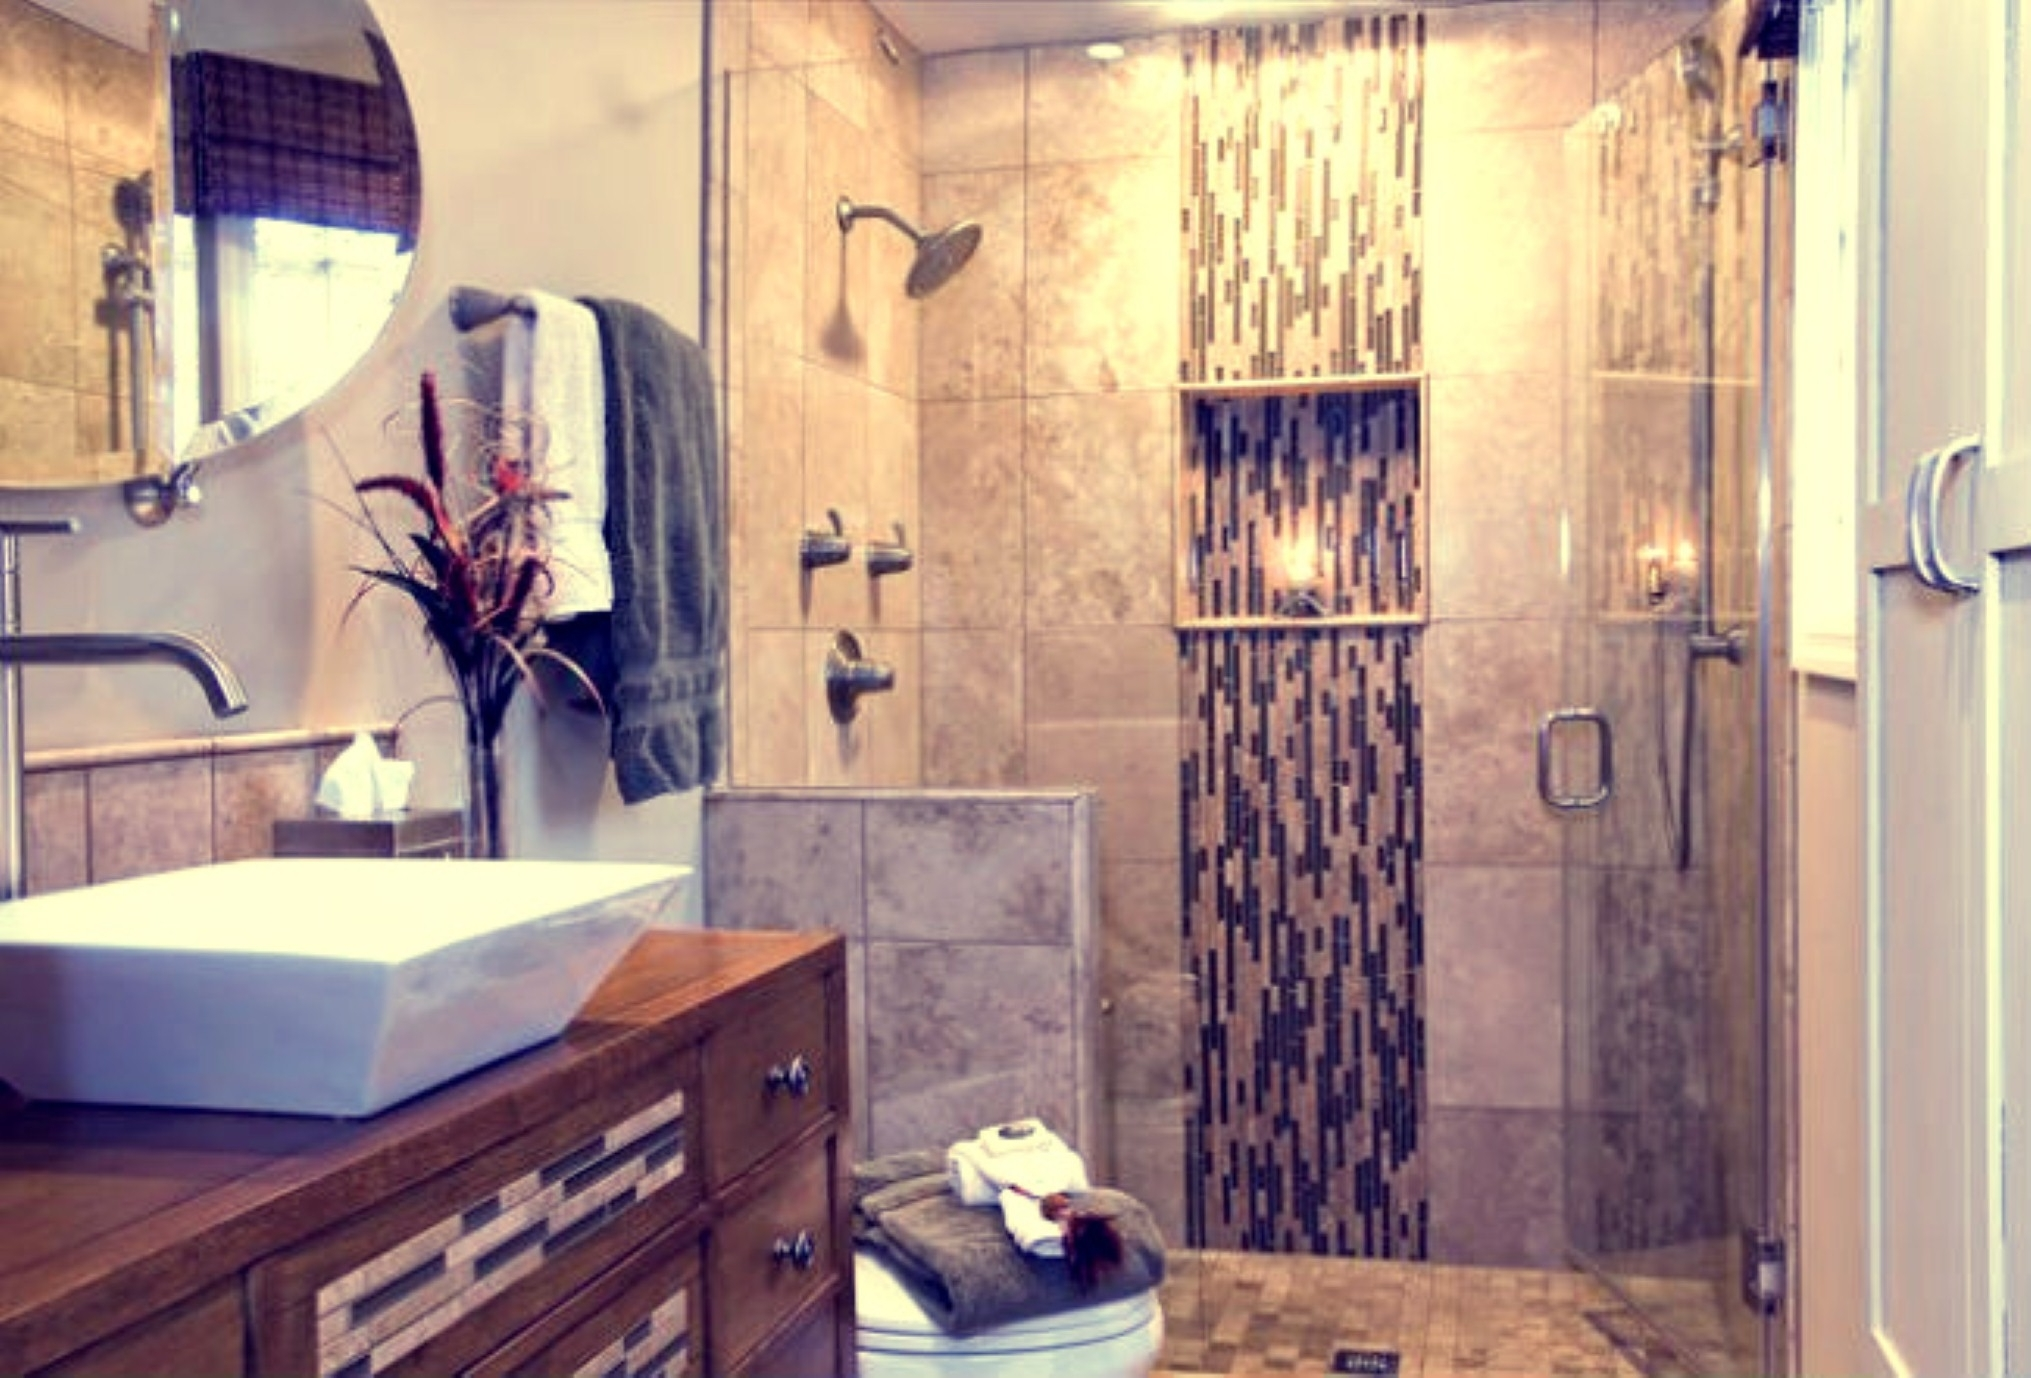 Stylish Bathroom Remodel With Various Examples Of Best Decoration Of Bathroom To The Inspiration Modern Design Ideas (View 20 of 23)